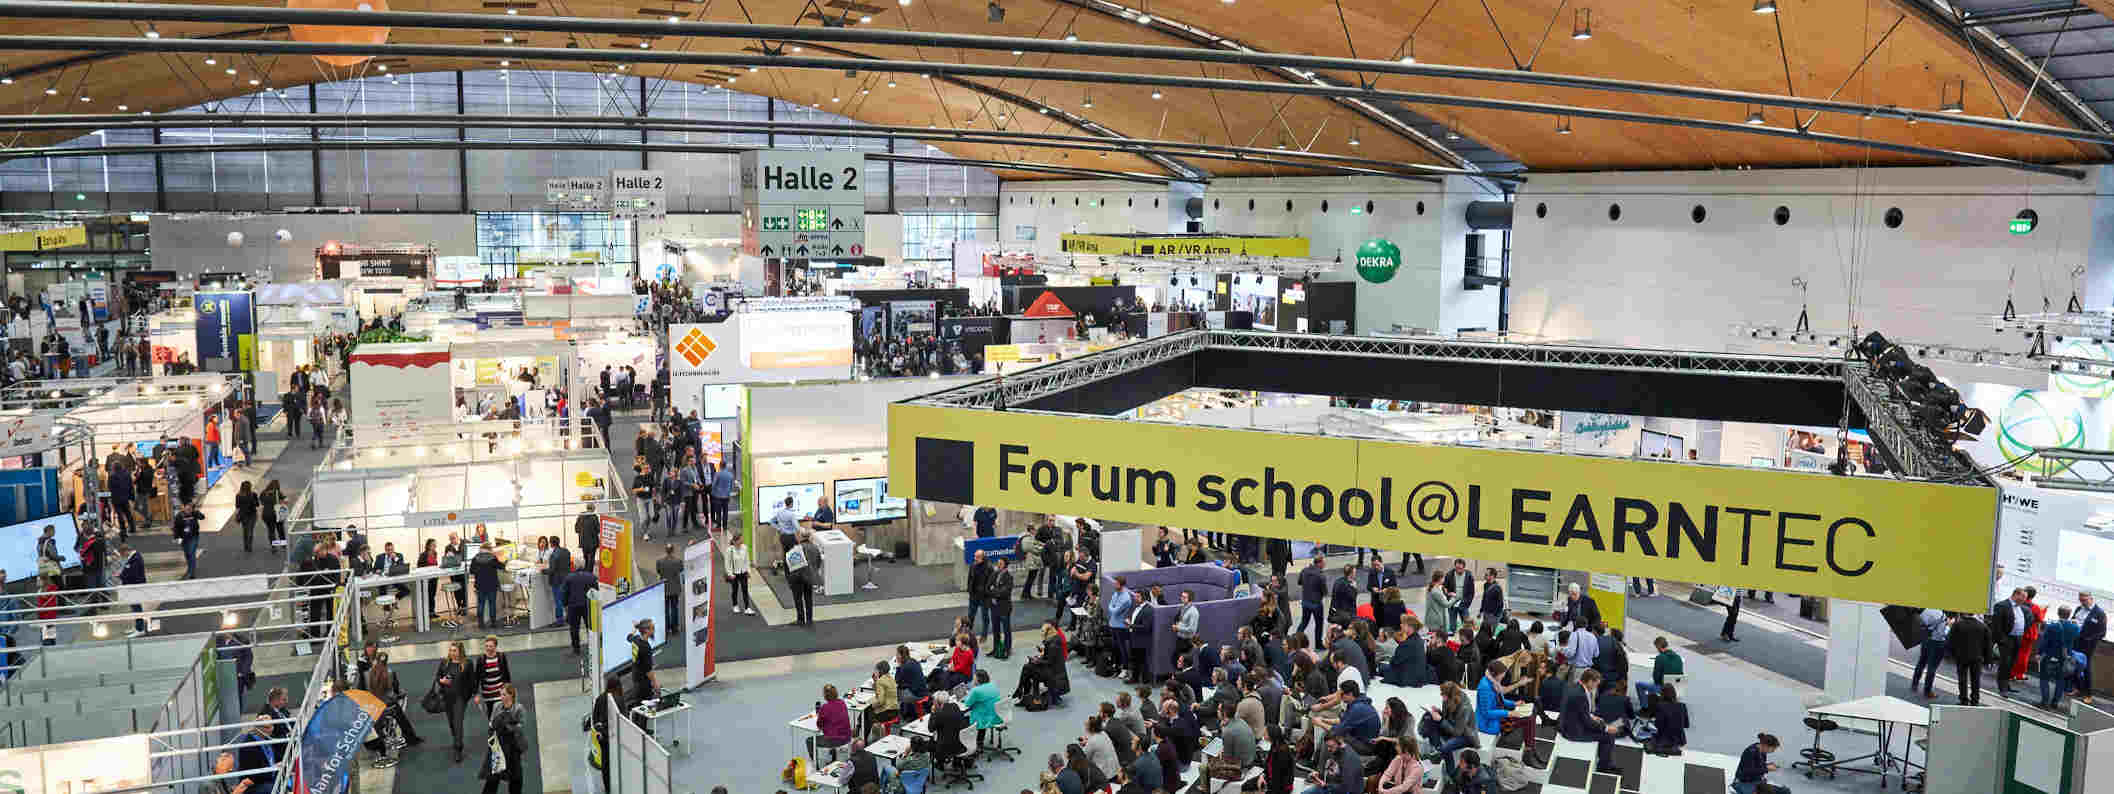 Digitale Impulse auf der Learntec 2019